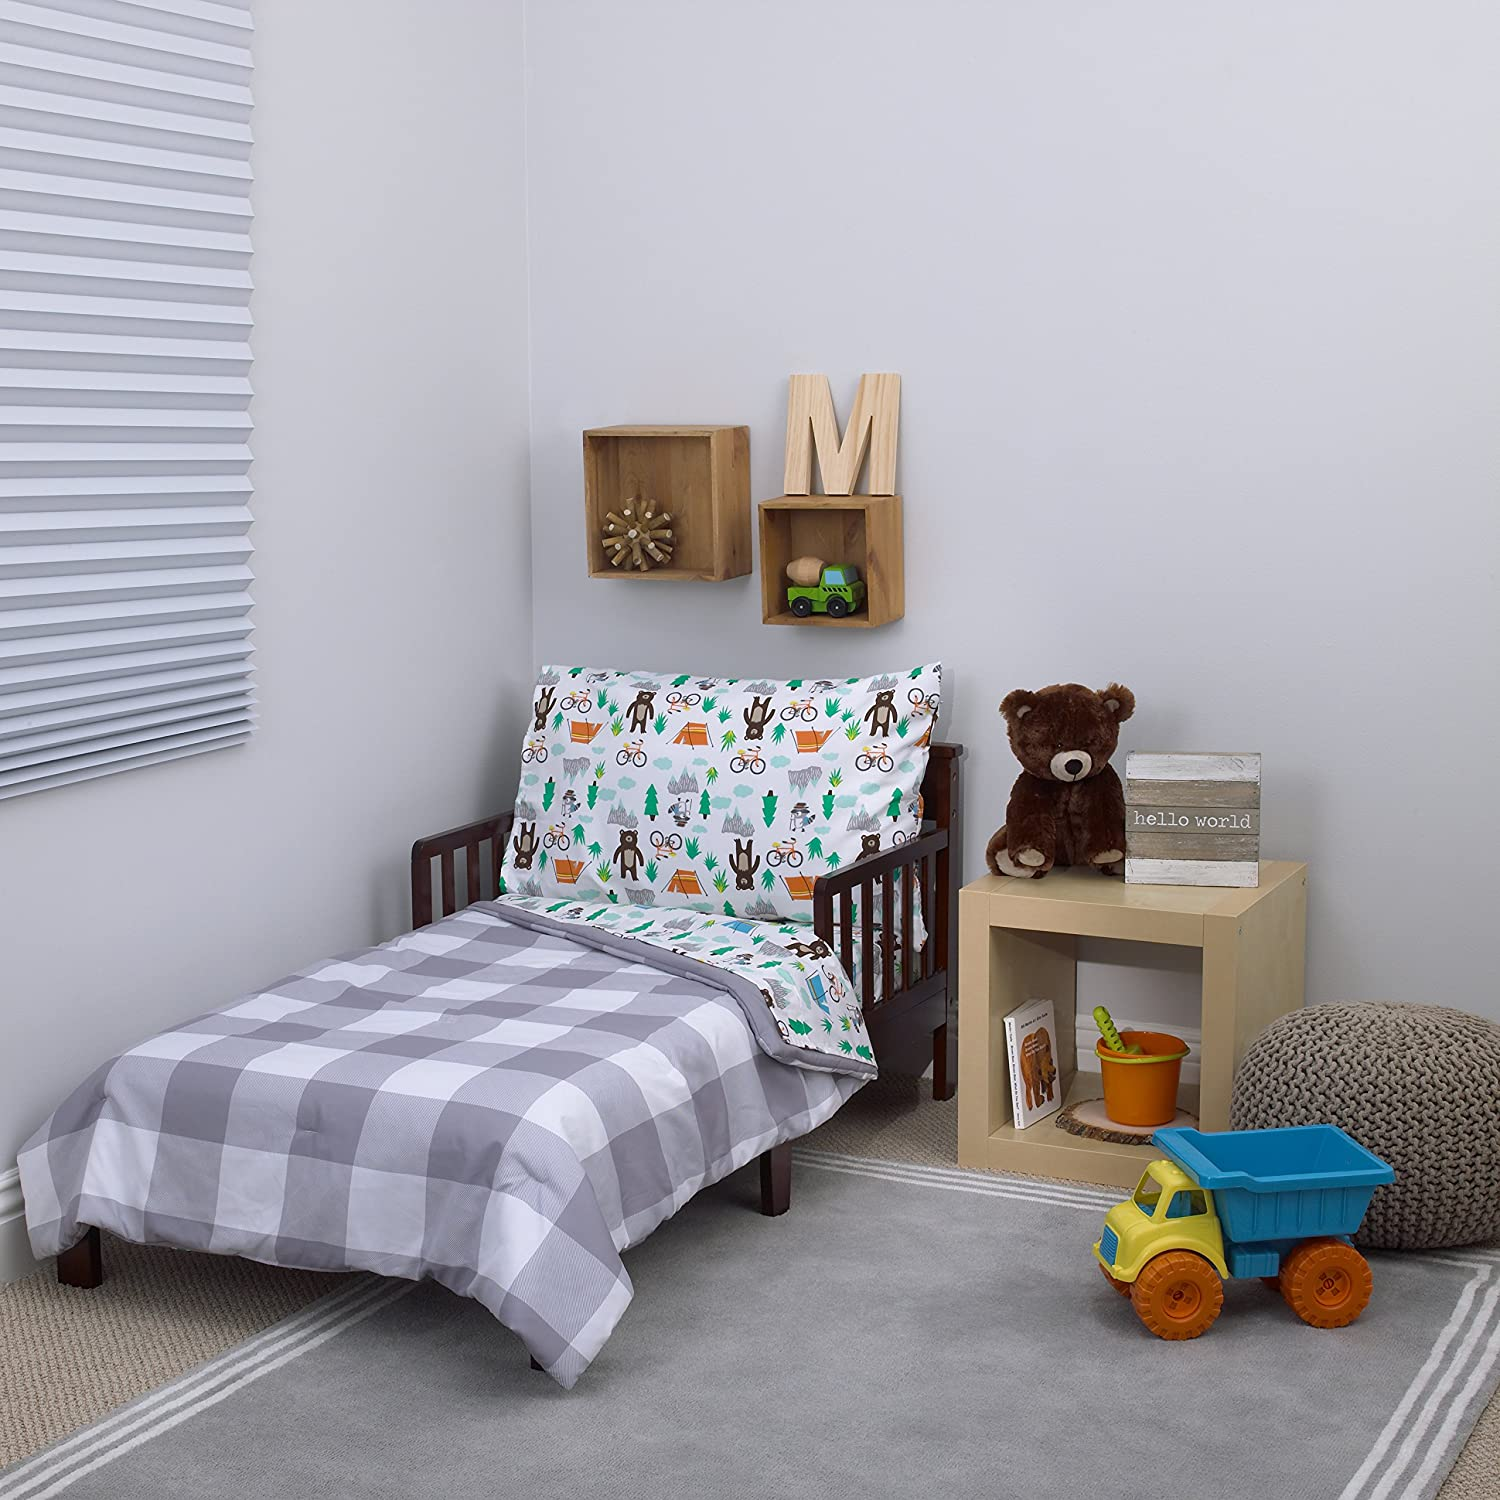 52 x 28 Carters 4-Piece Toddler Set Grey//White//Green//Blue Woodland Boy